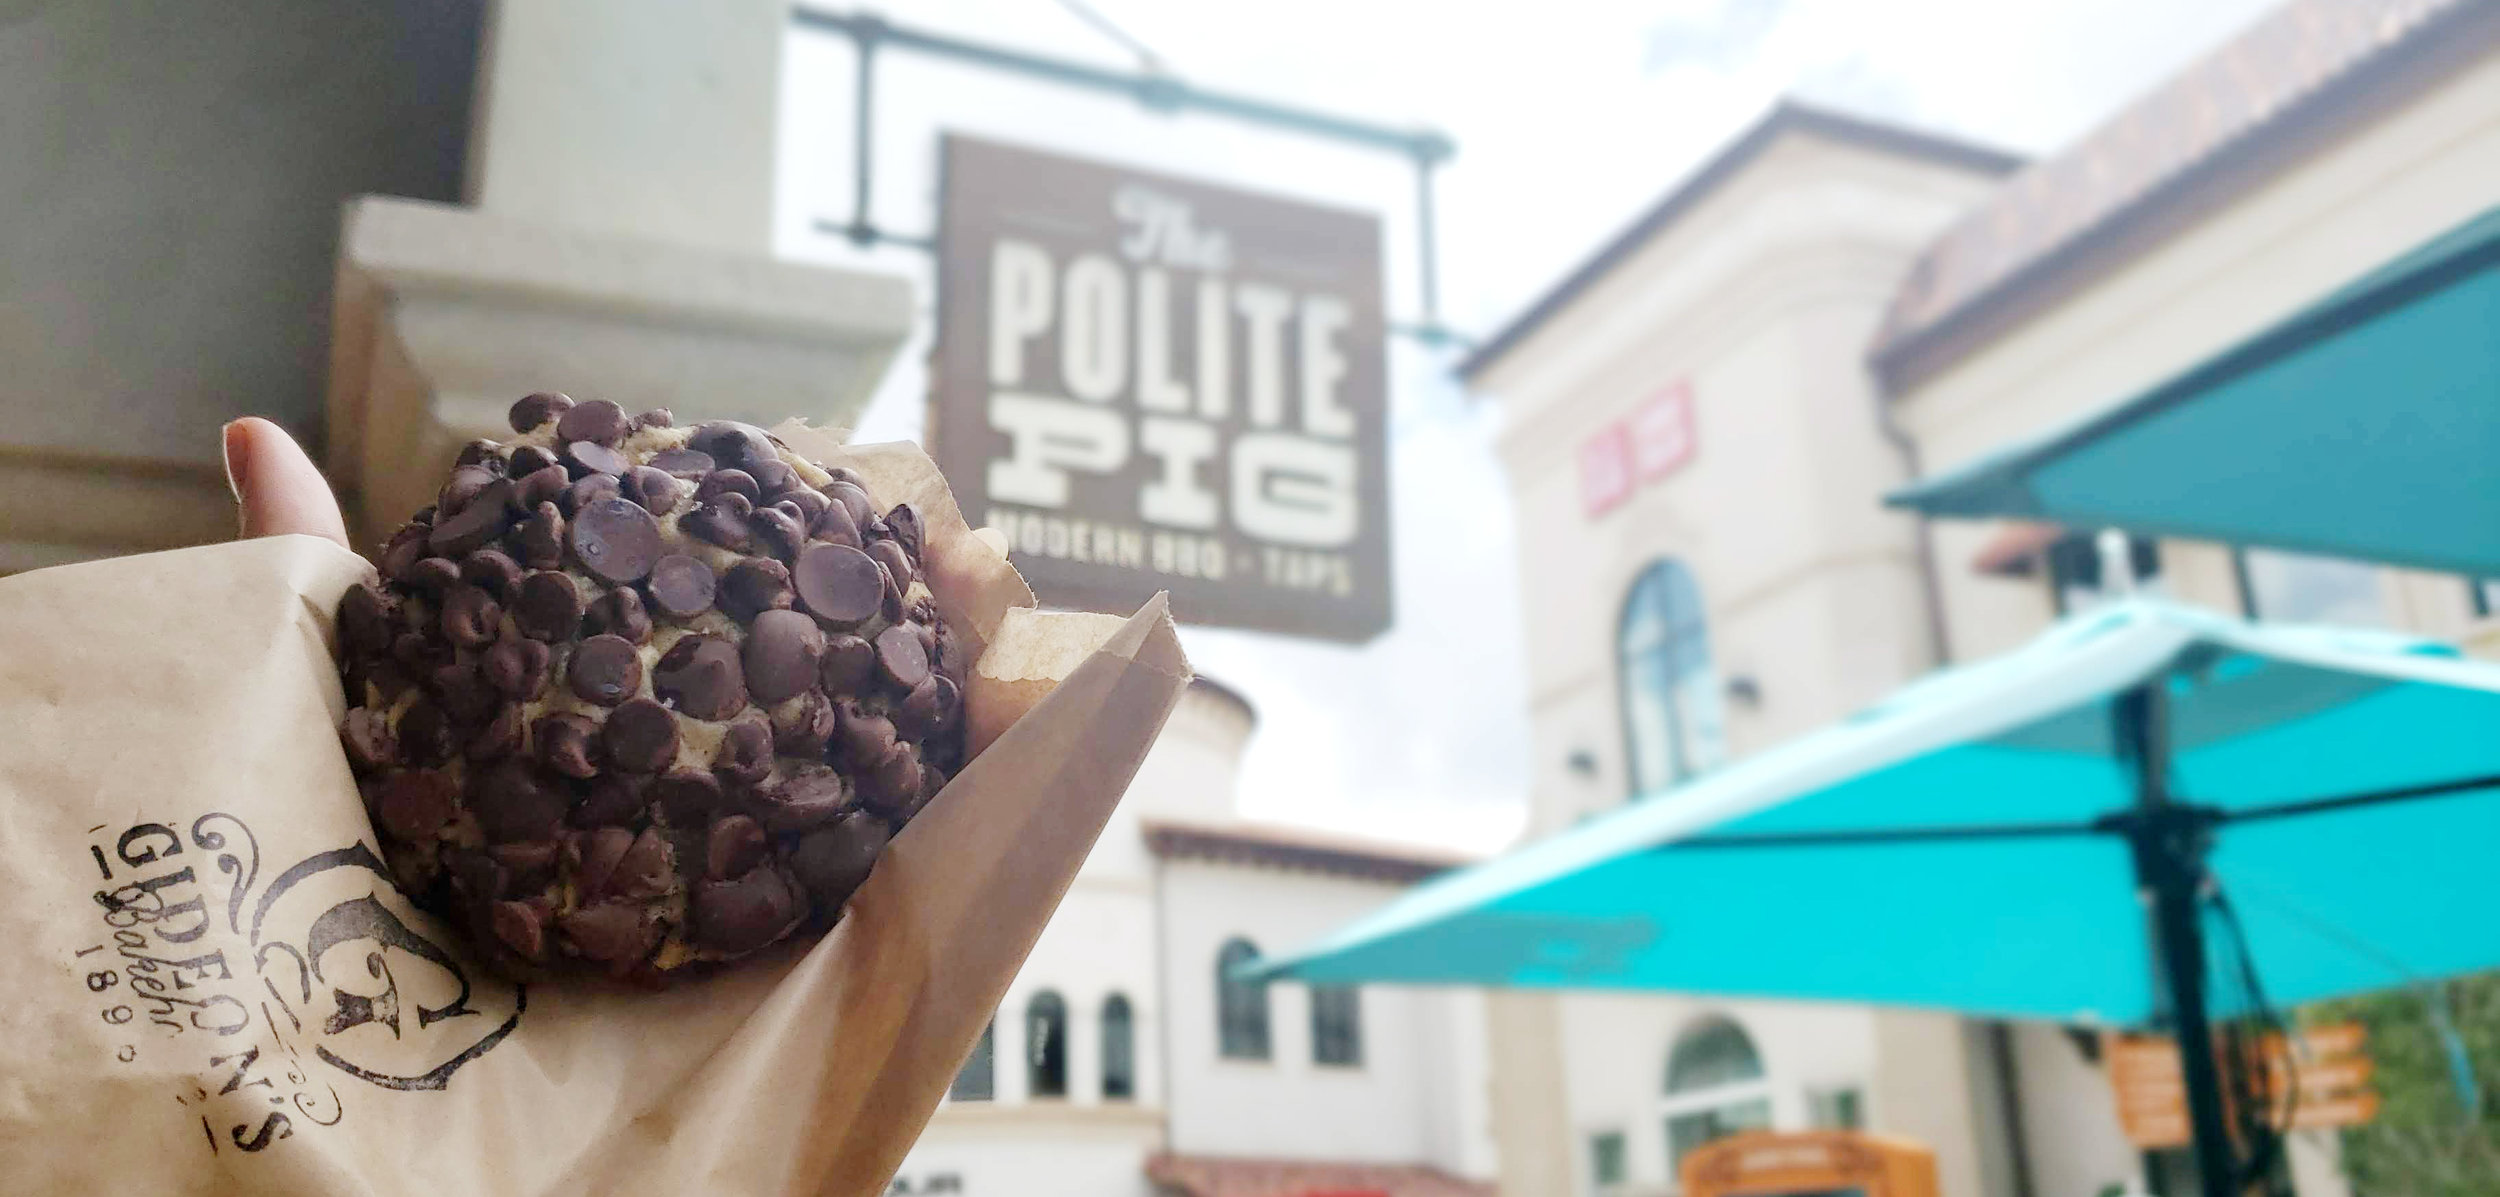 The Polite Pig at Disney Springs is one of only two places to get this giant cookie.